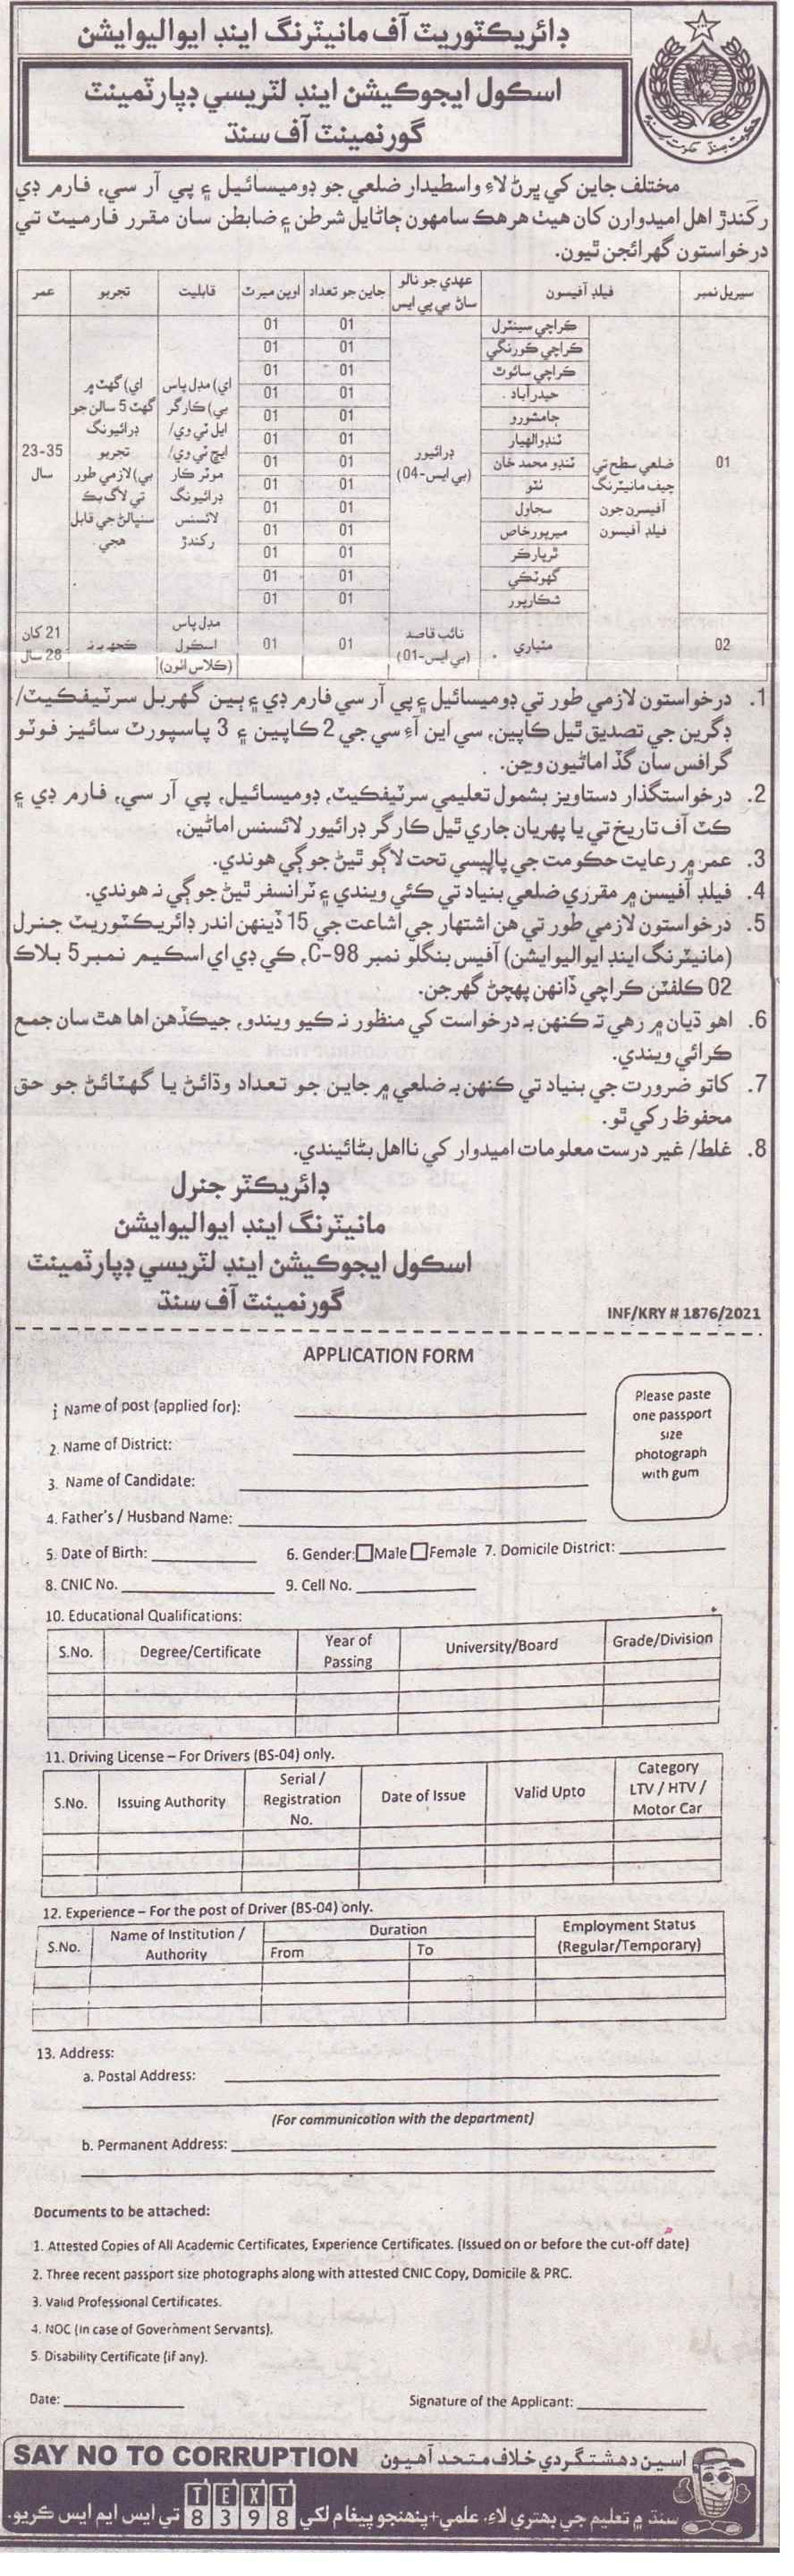 School Education & Literacy Department, Directorate General of Monitoring and Evaluation Jobs 2021